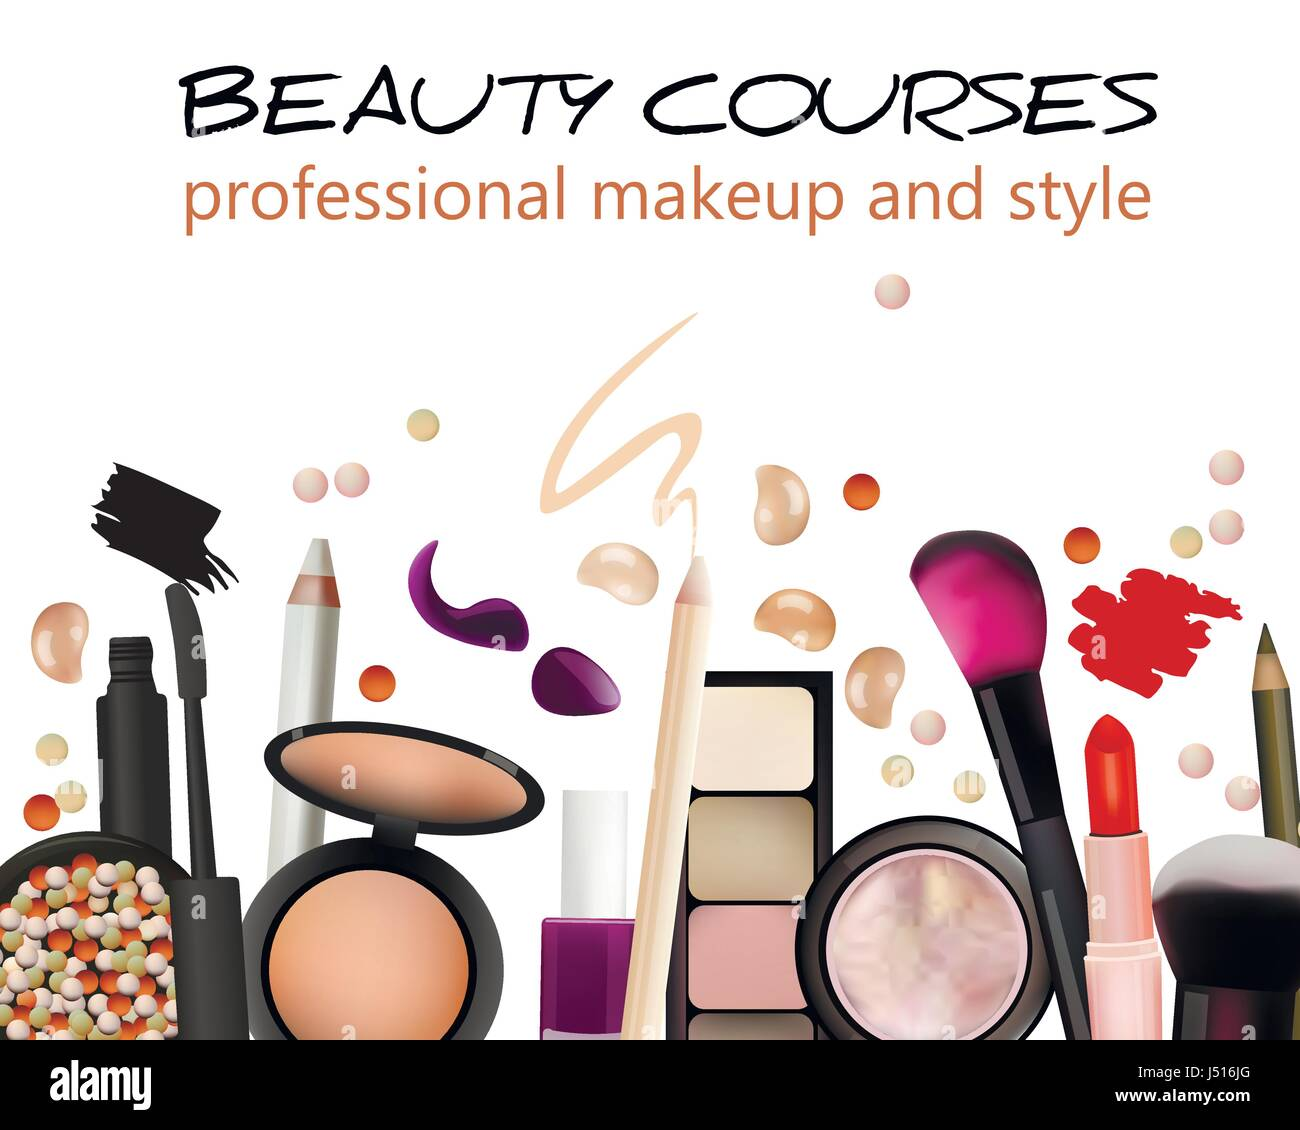 Make a poster design - Beauty Courses Poster Design Cosmetic Products Professional Make Up Care Printable Template For Business Banner Poster Voucher Booklet